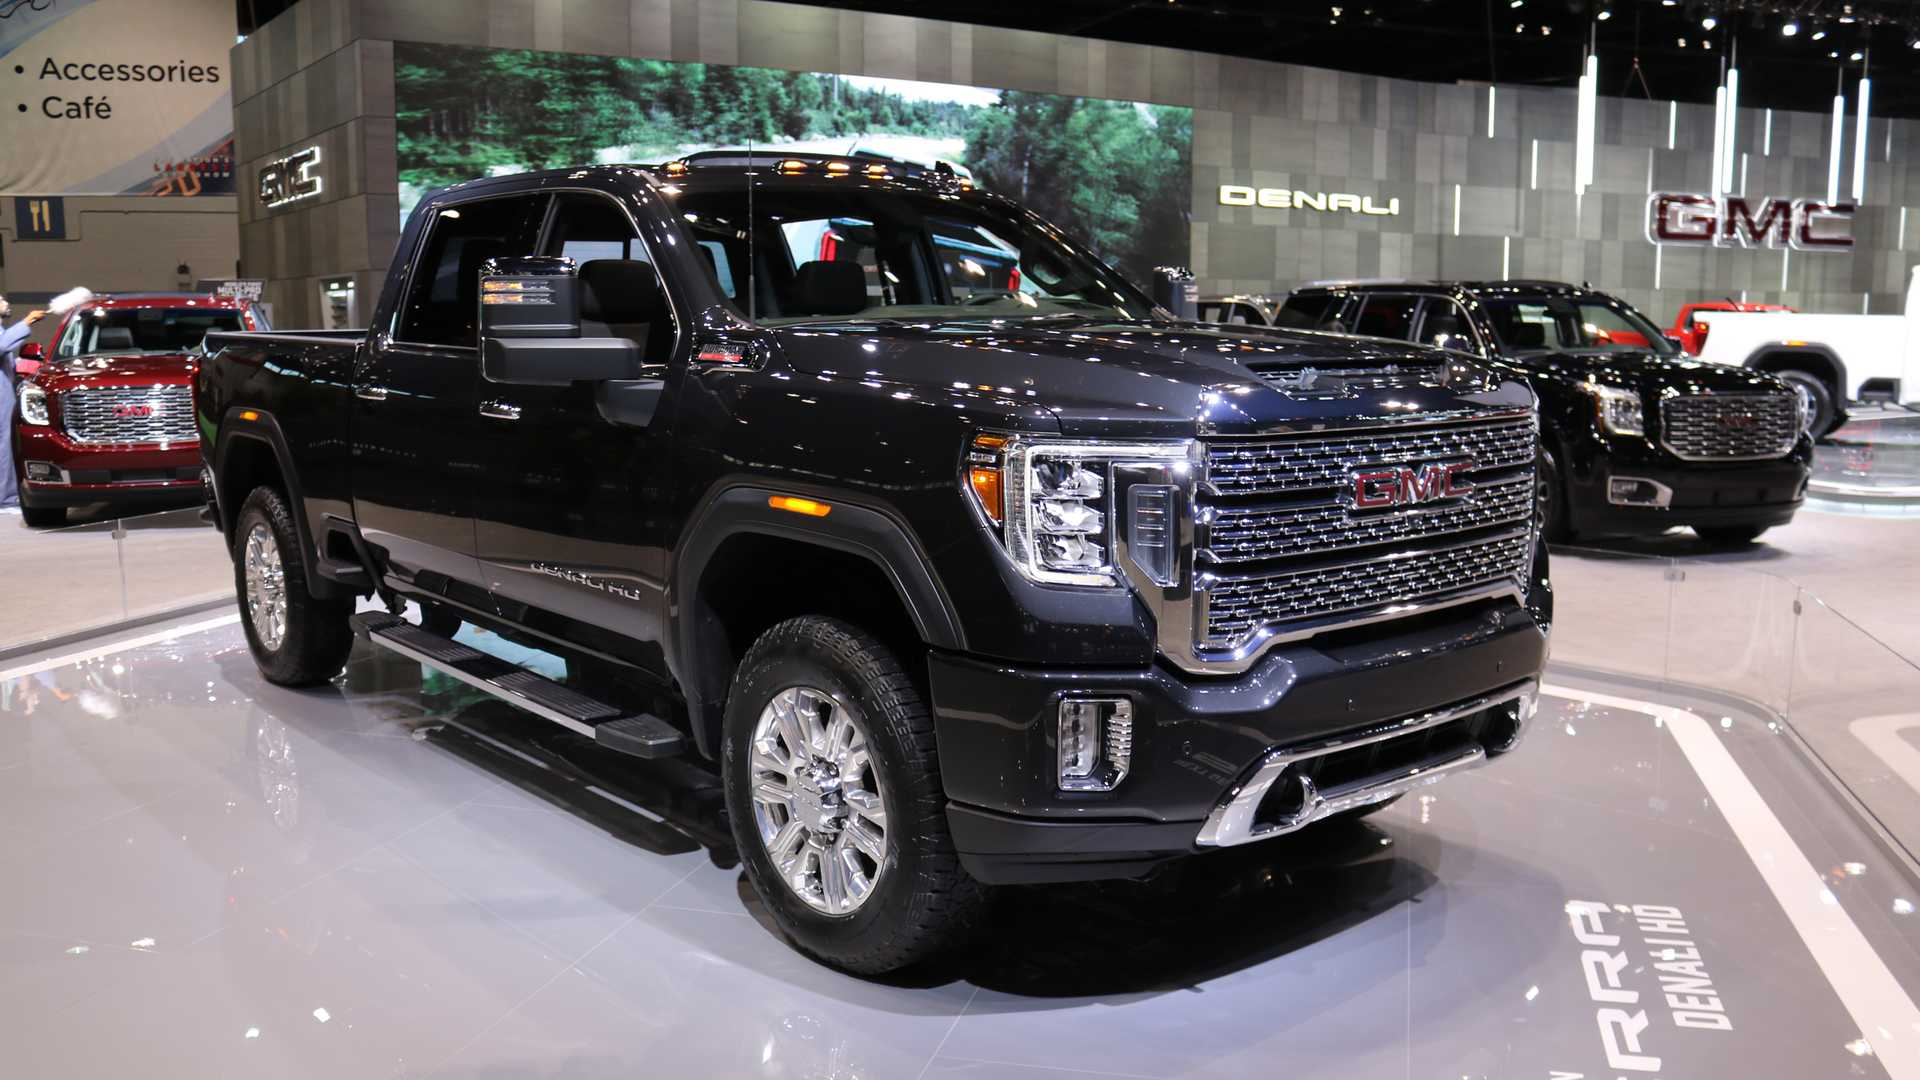 26 Concept of 2020 Gmc 2500 Gas Exterior and Interior with 2020 Gmc 2500 Gas